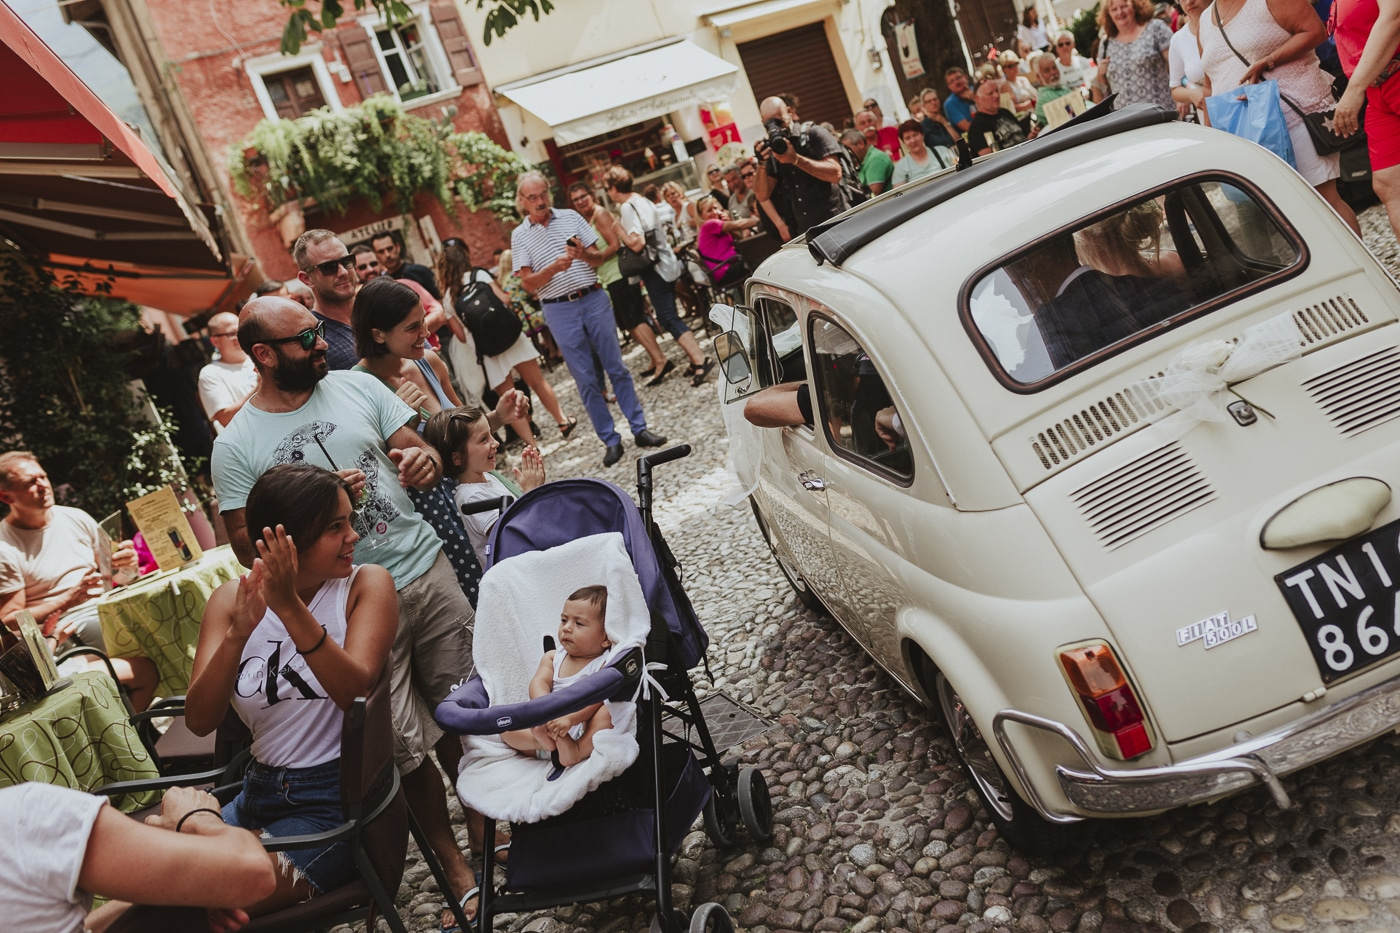 Vintage cream car driving along cobbled streets around local people and tourists